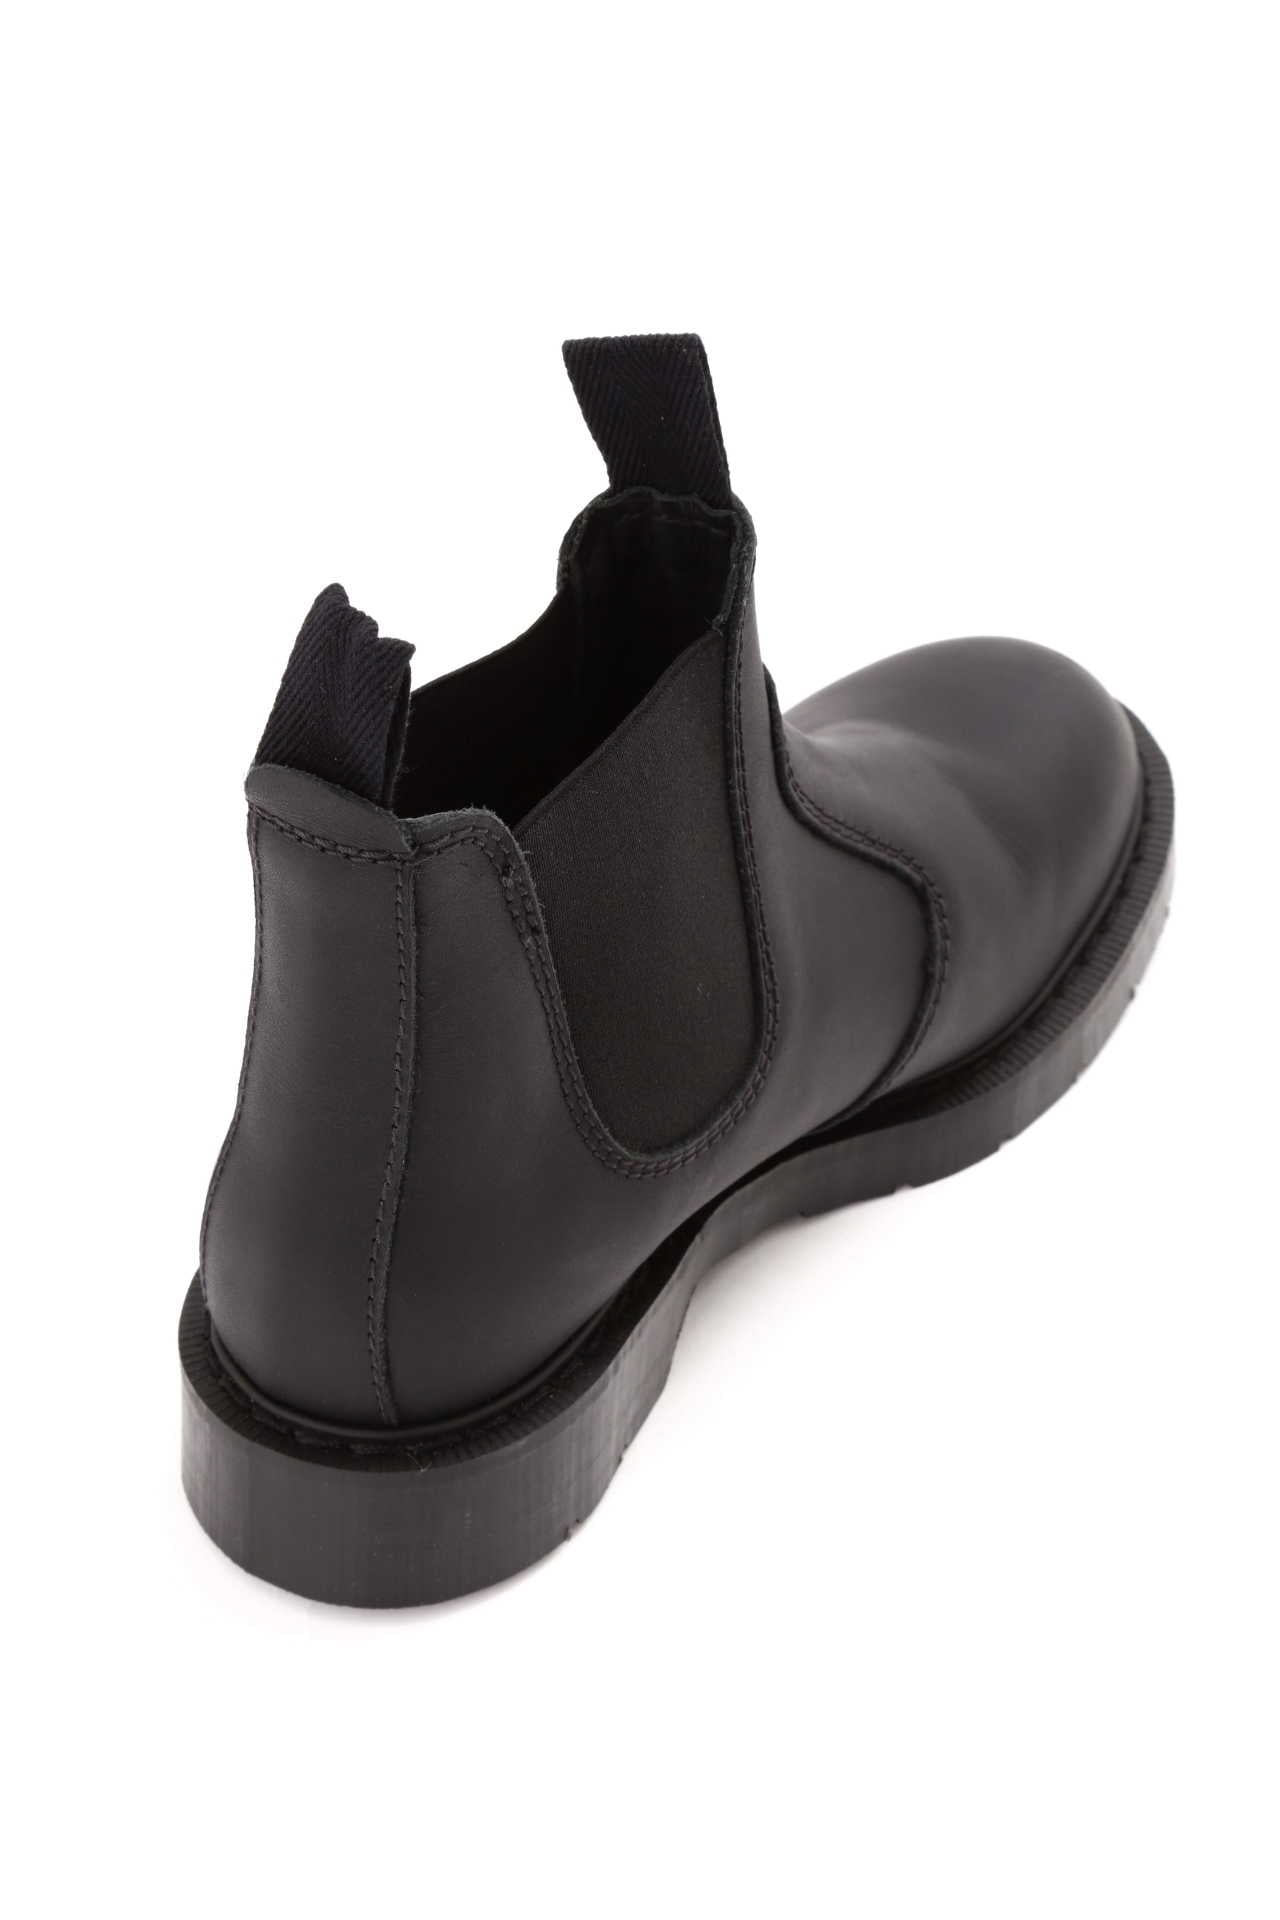 MHL CHELSEA BOOTS(MHL SHOP限定)3